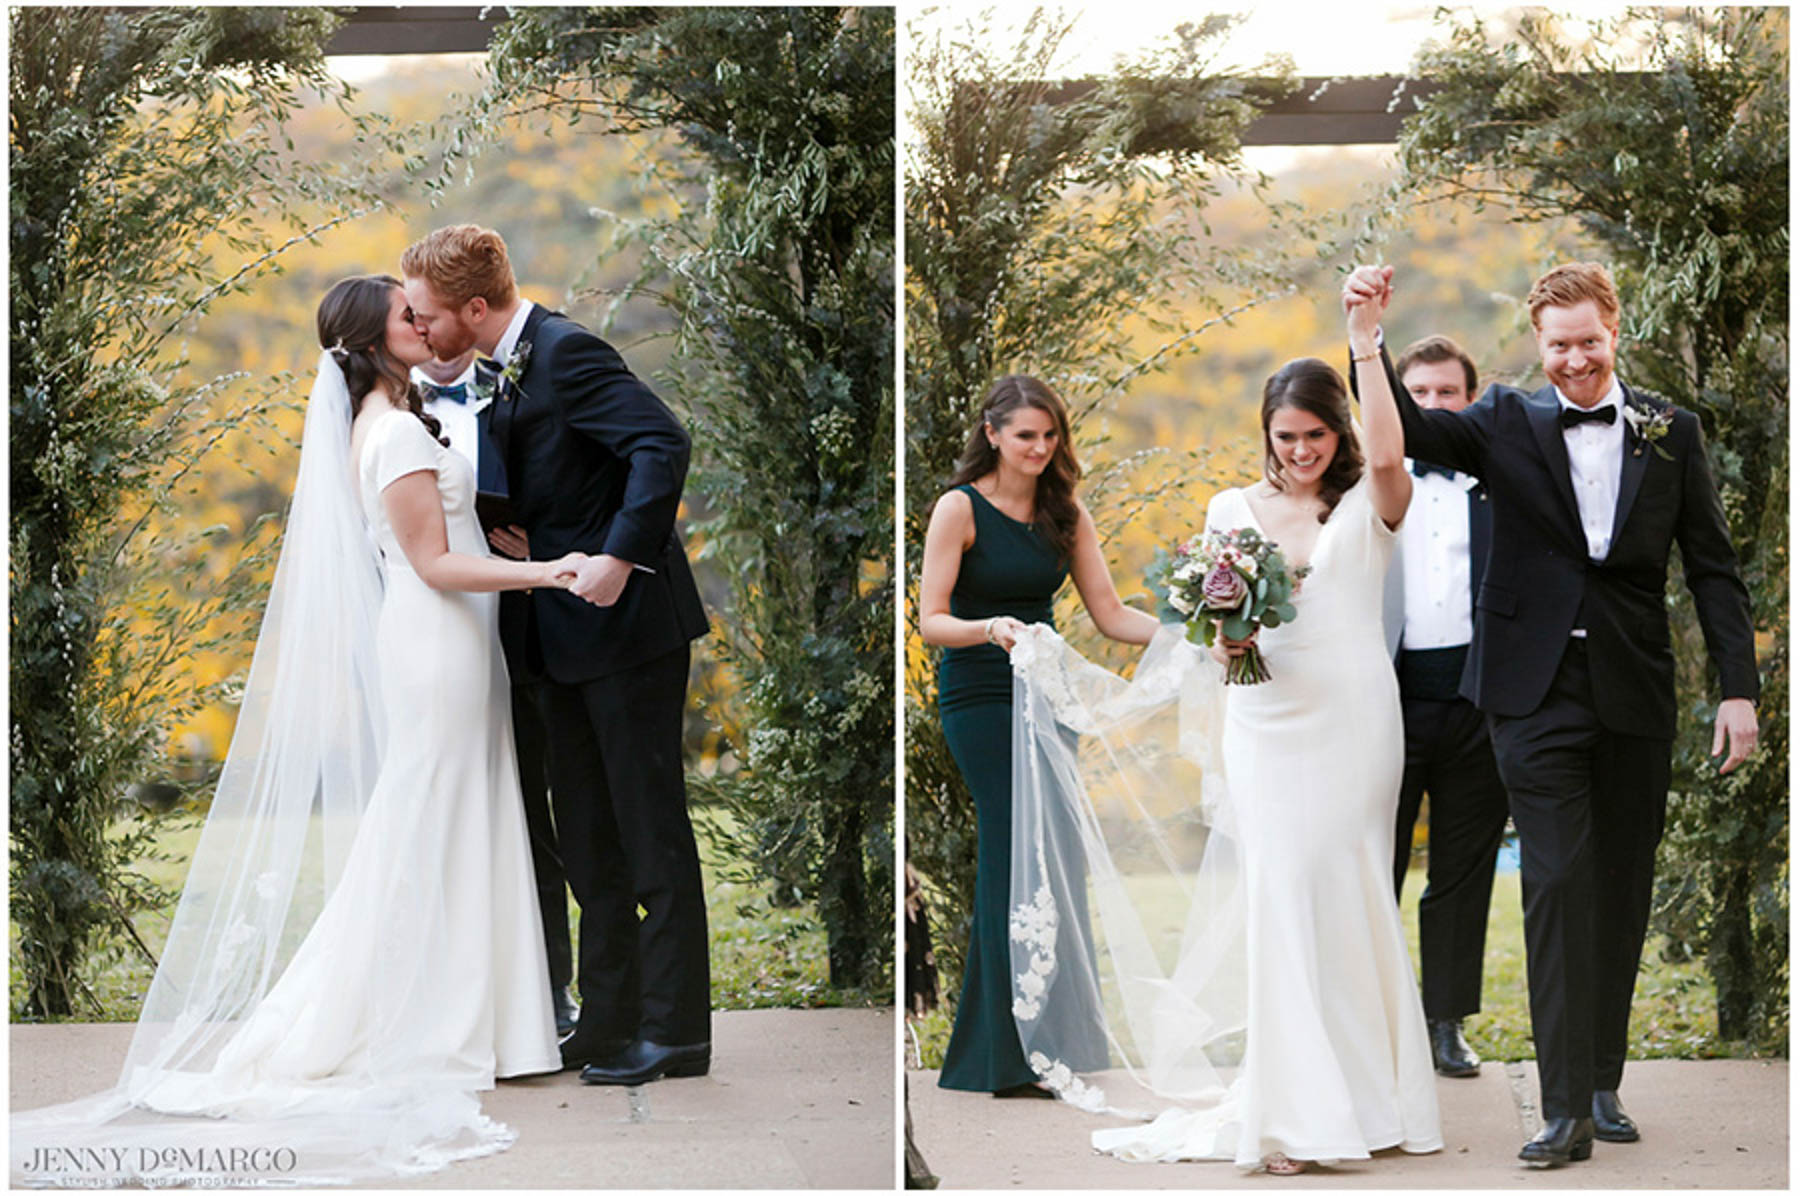 bride and groom first kiss, walk down the aisle holding hands in celebration